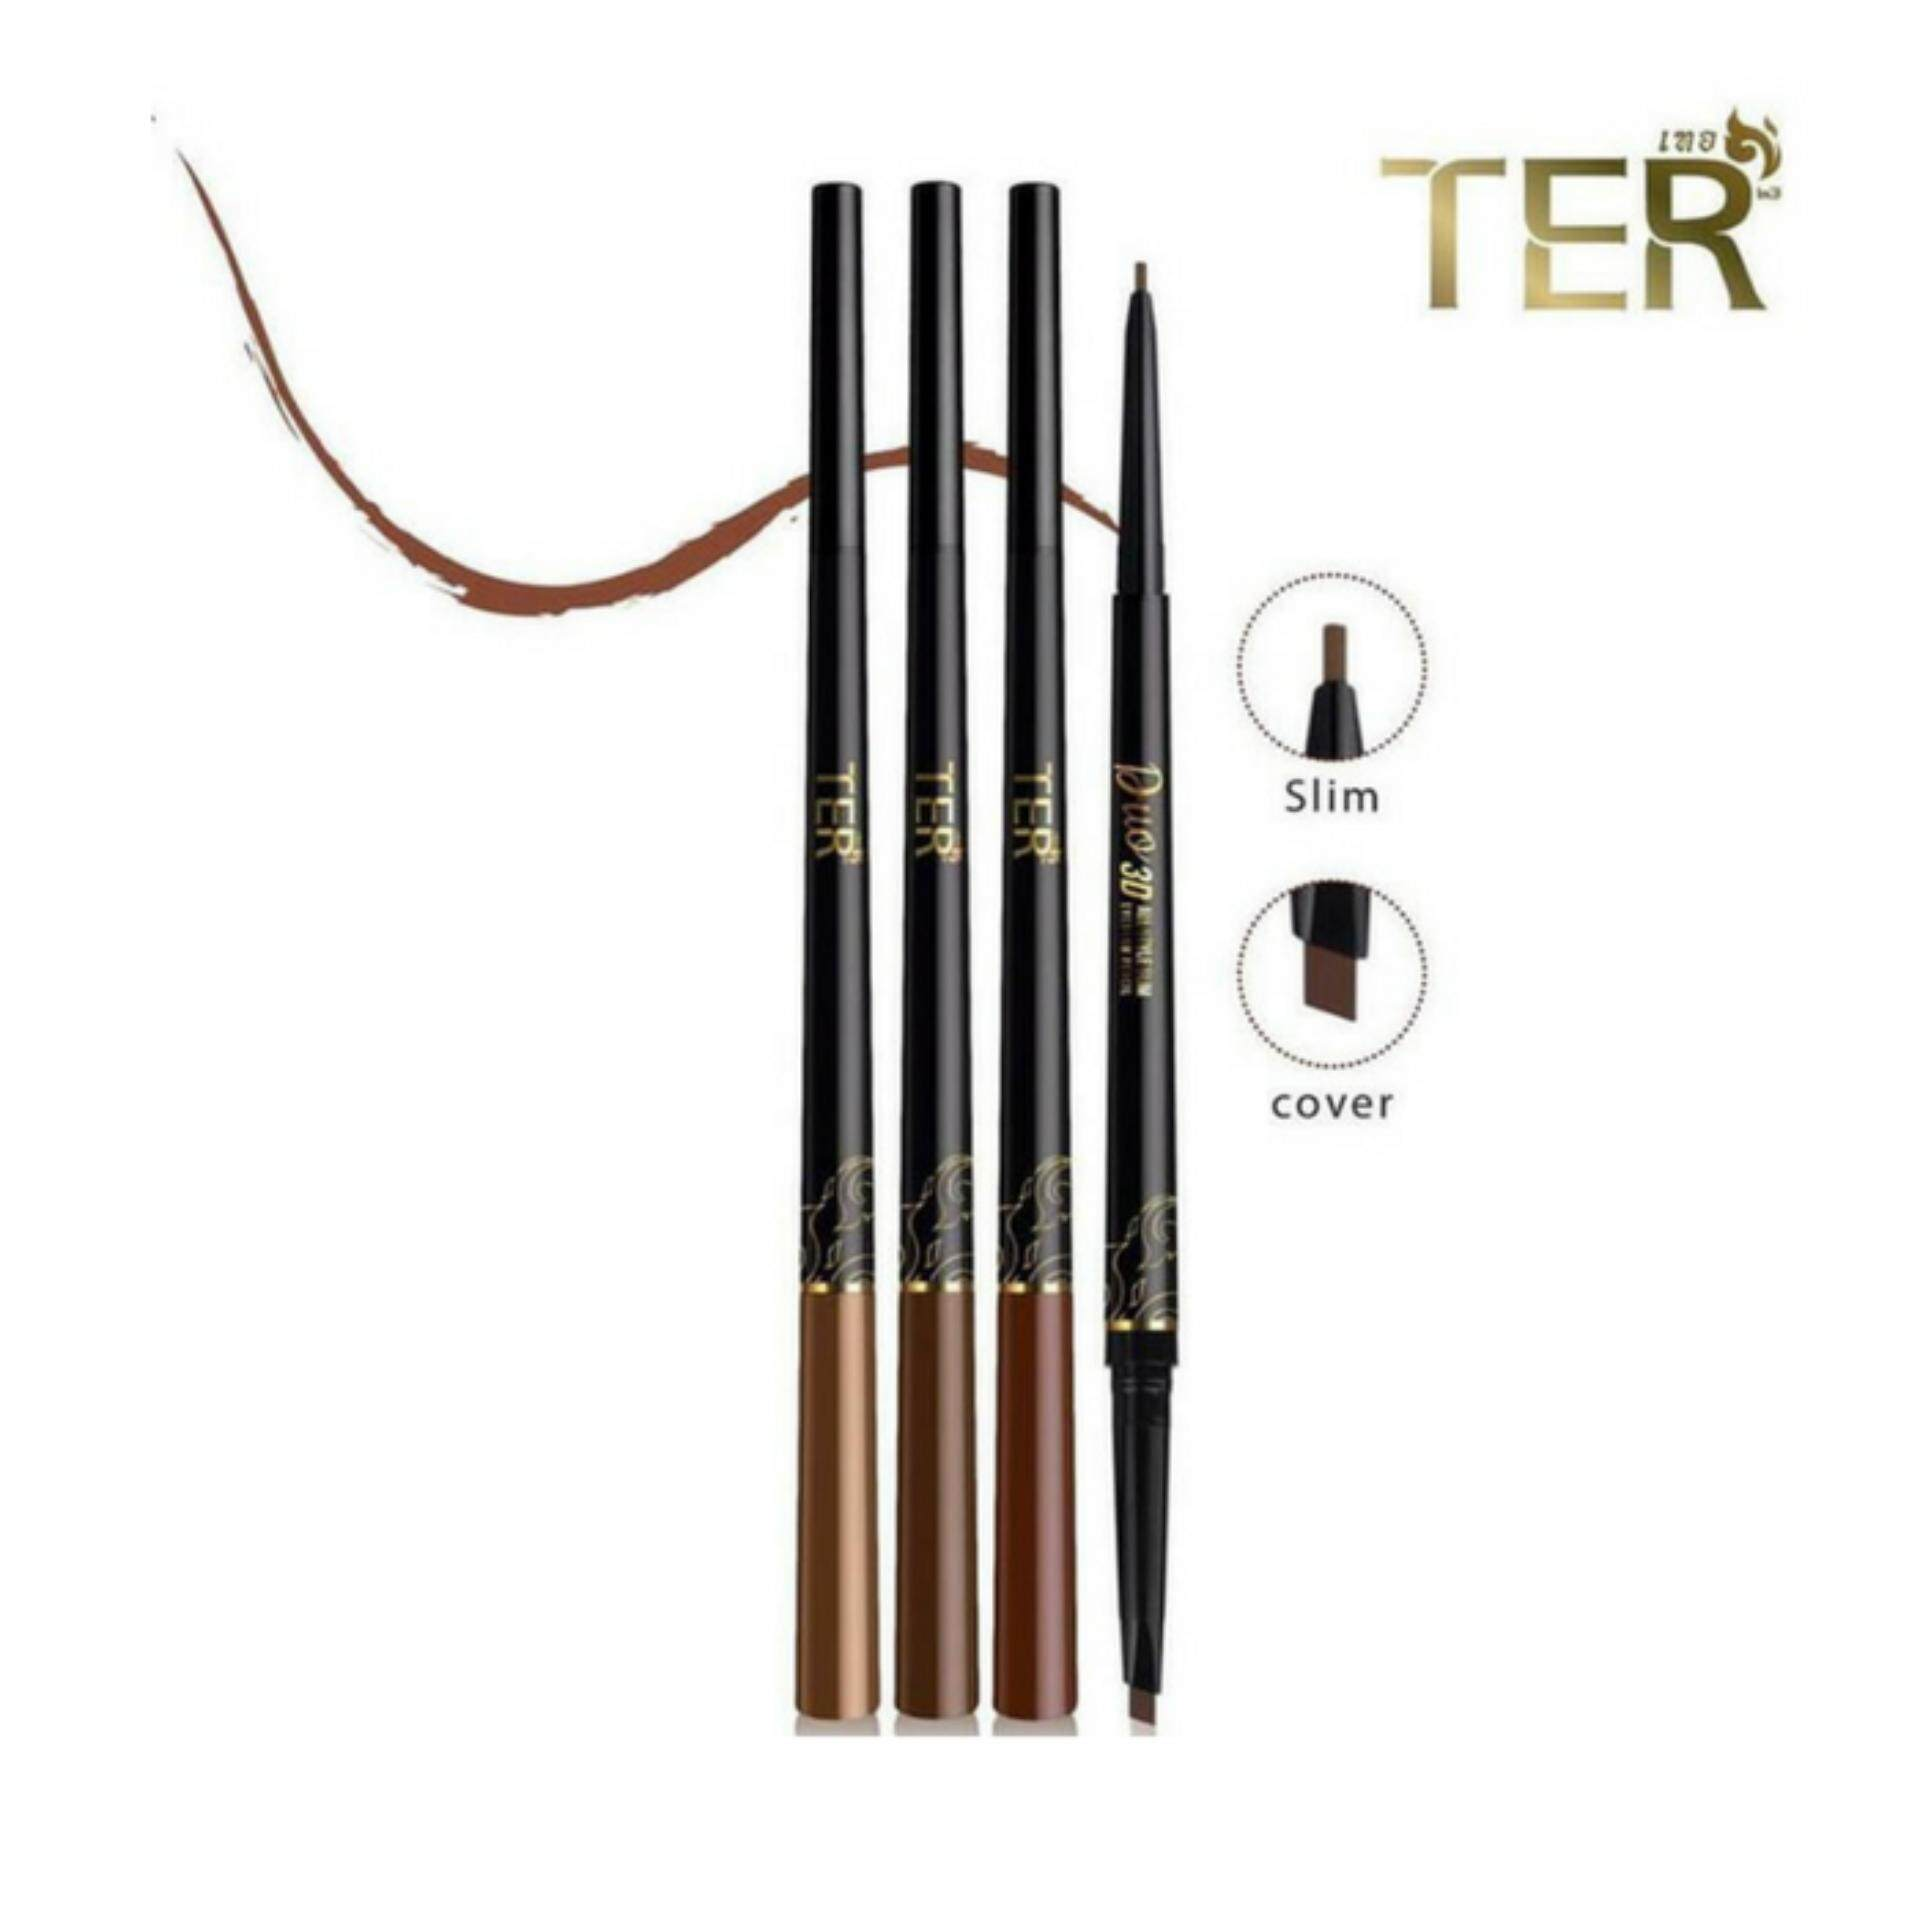 TER Duo 3D All Style Slim Eyebrow Pencil